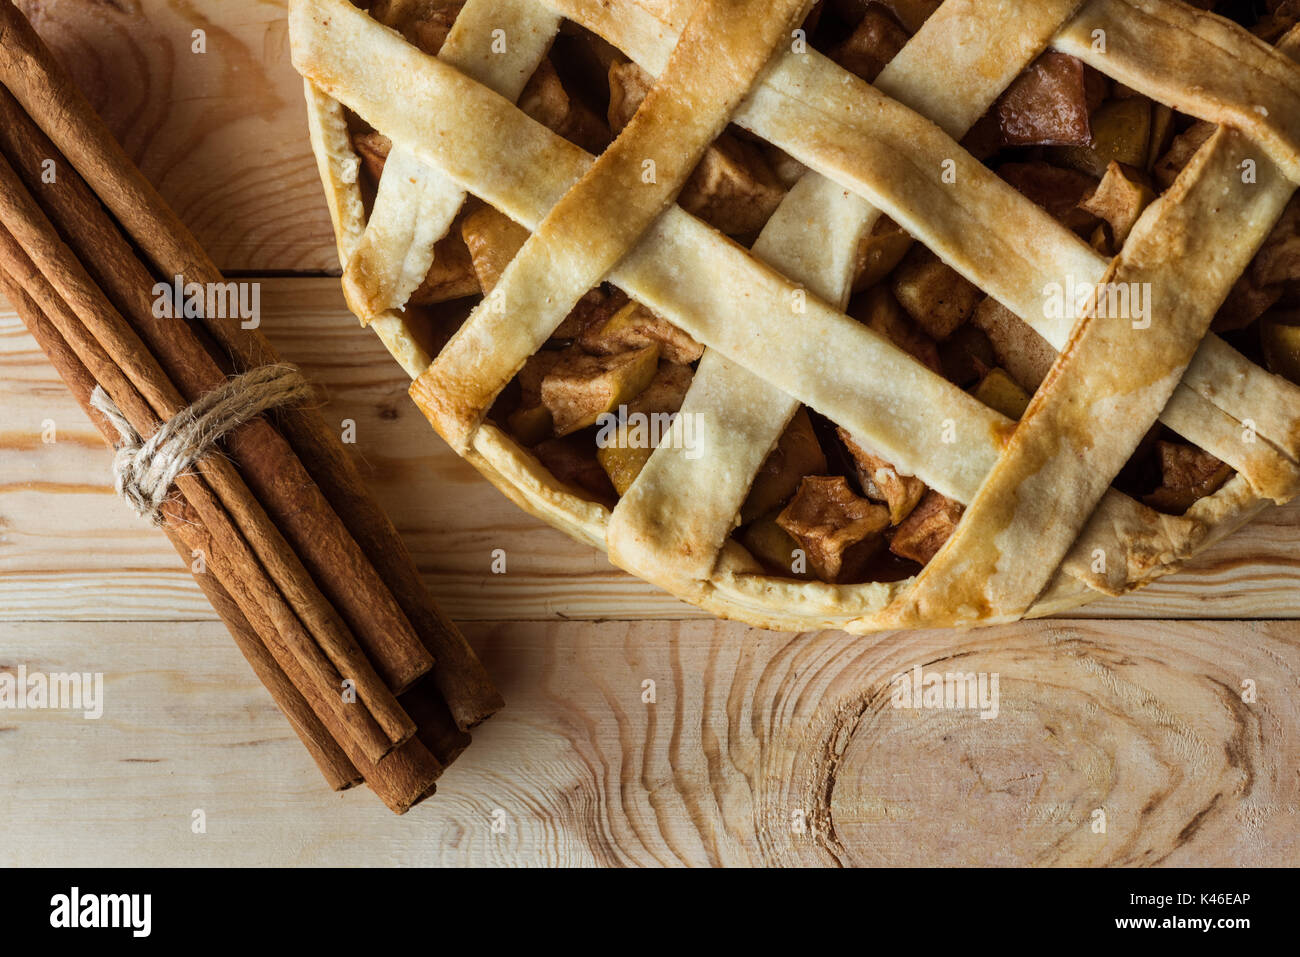 top view of homemade apple pie and cinnamon sticks on rustic wooden tabletop - Stock Image